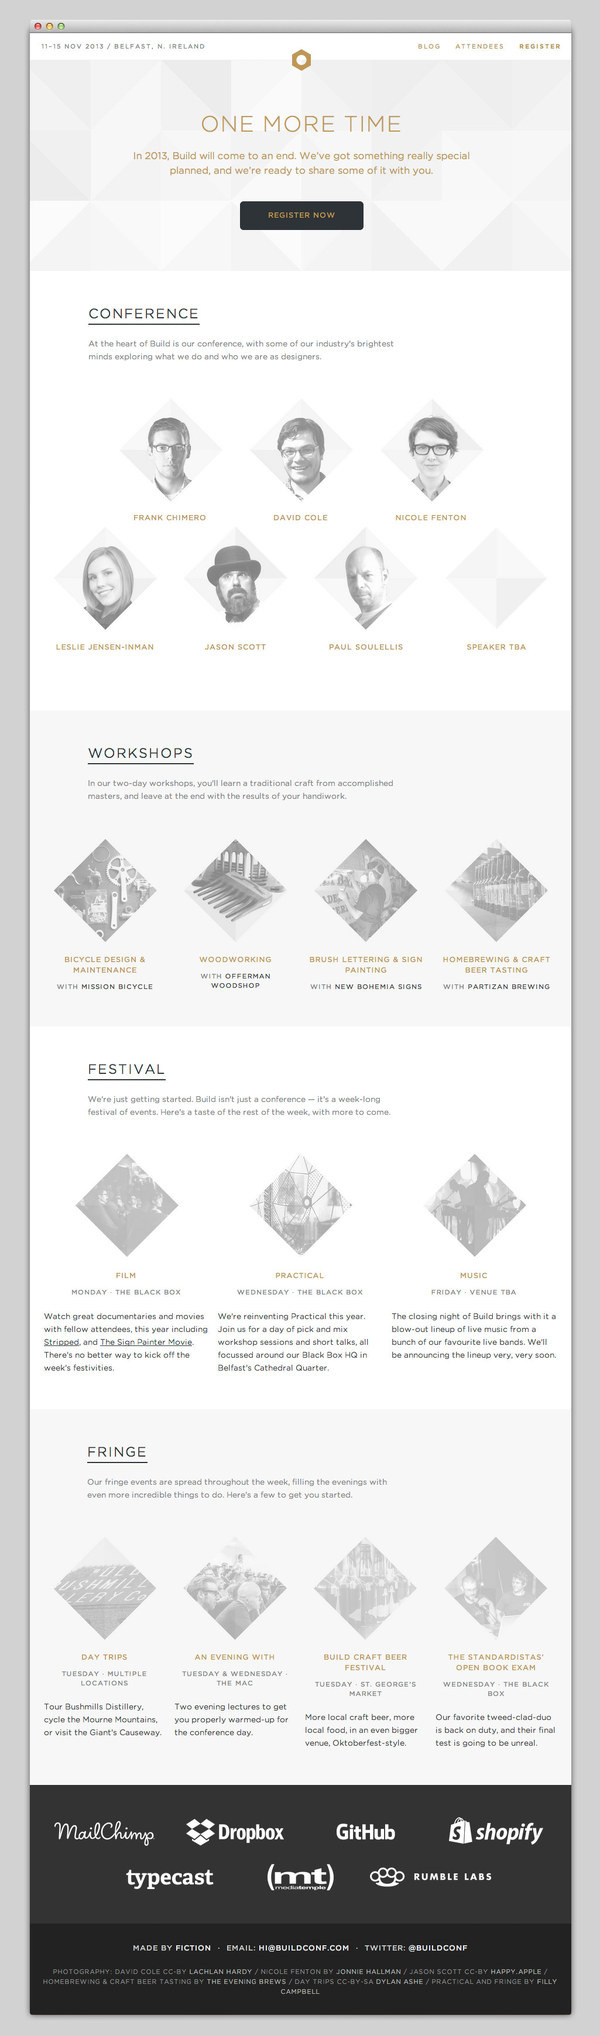 Build 2013 #website #layout #design #web